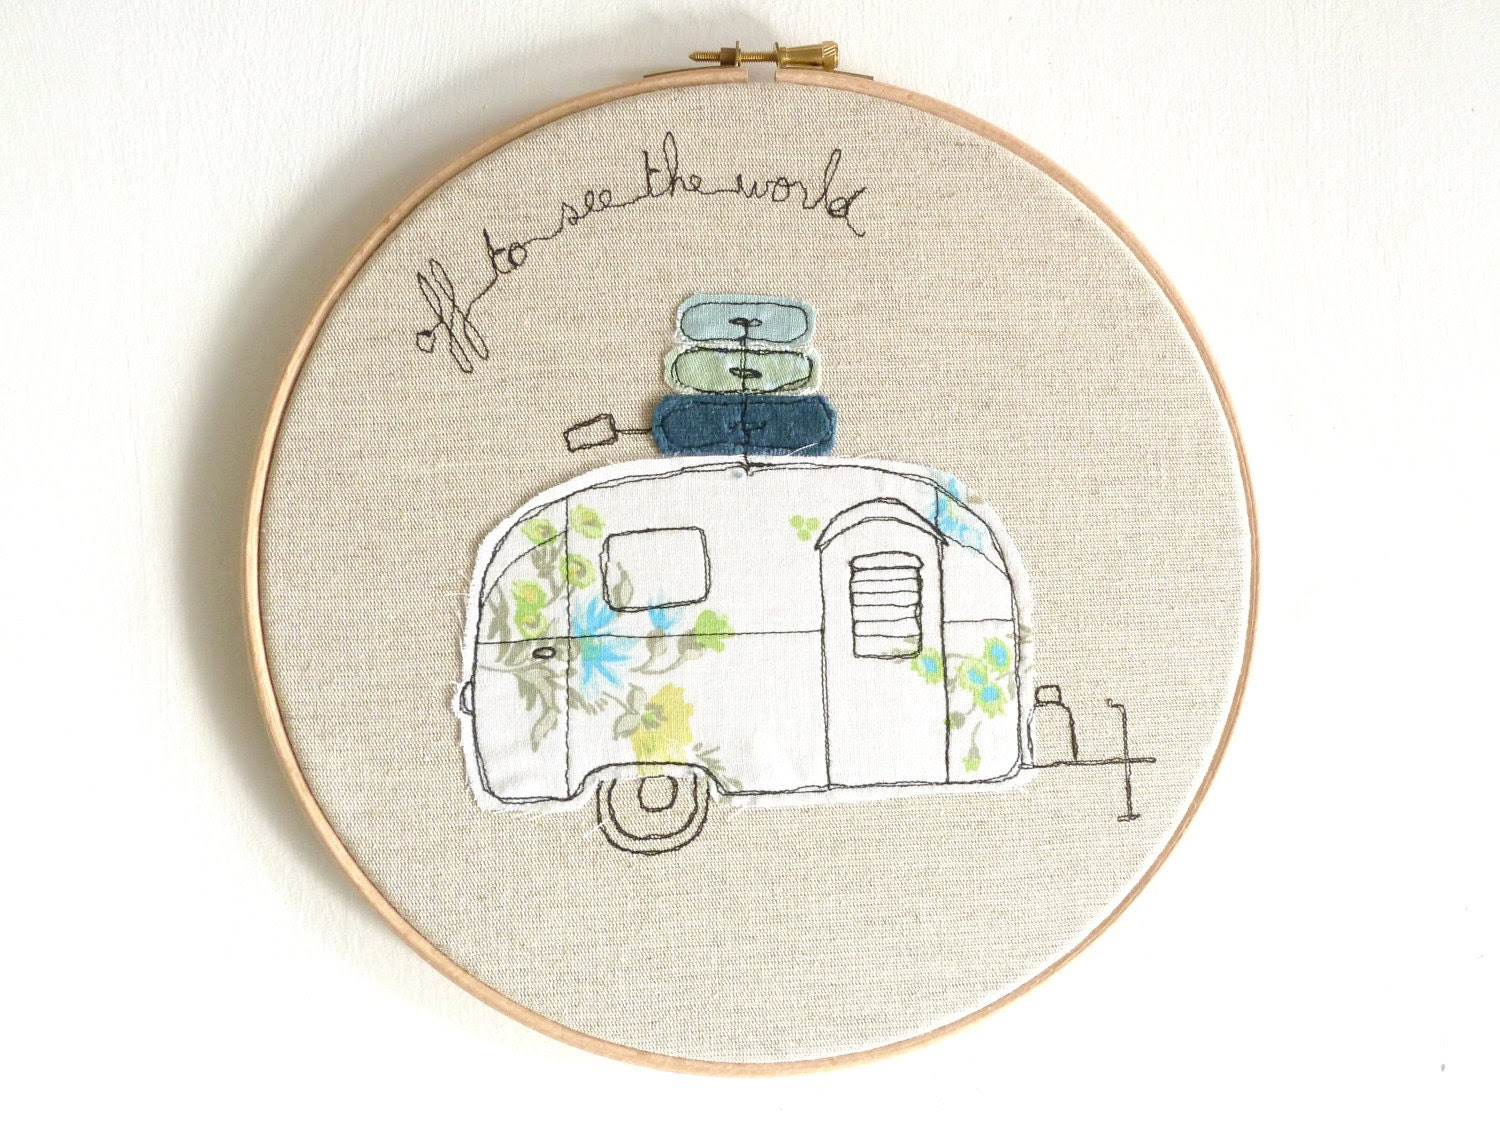 "Embroidered Hoop Art - Airstream Bambi Textile Artwork in blue and green - Large 10"" hoop"